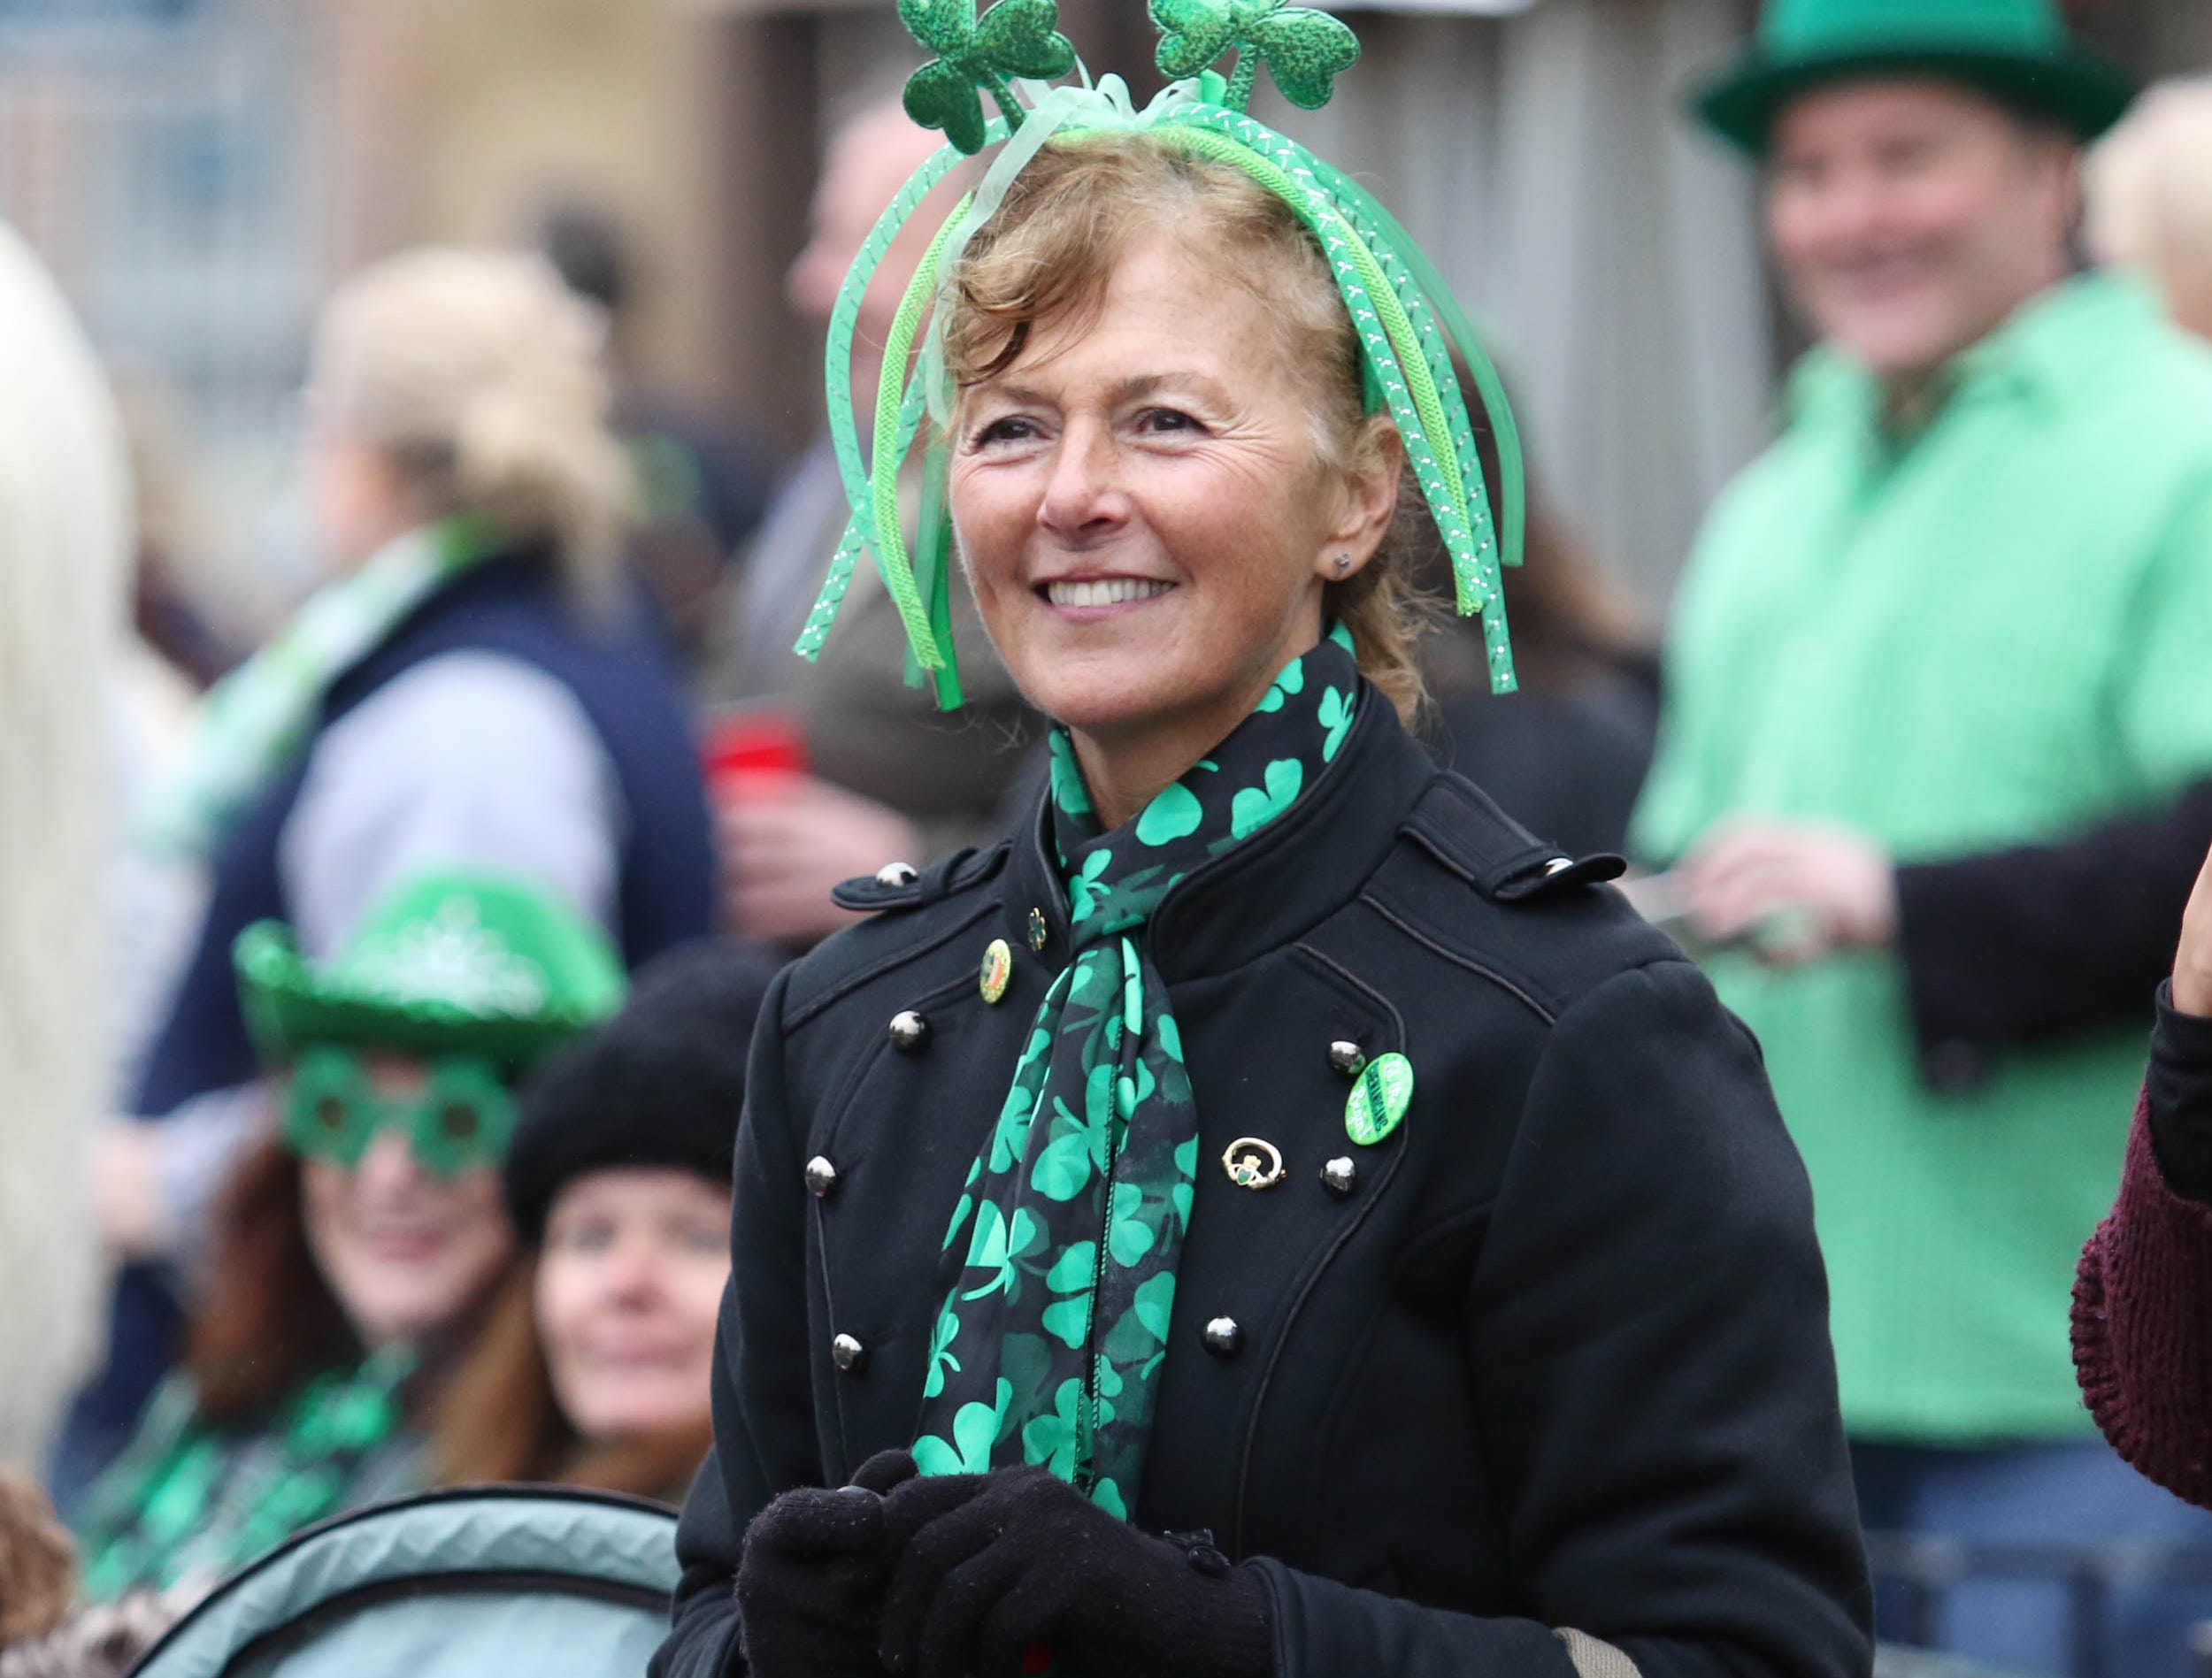 Donna O'Shea of Bridgewater enjoys the sights and sounds of the 28th Somerville St. Patrick's Parade along Main Street on Sunday.